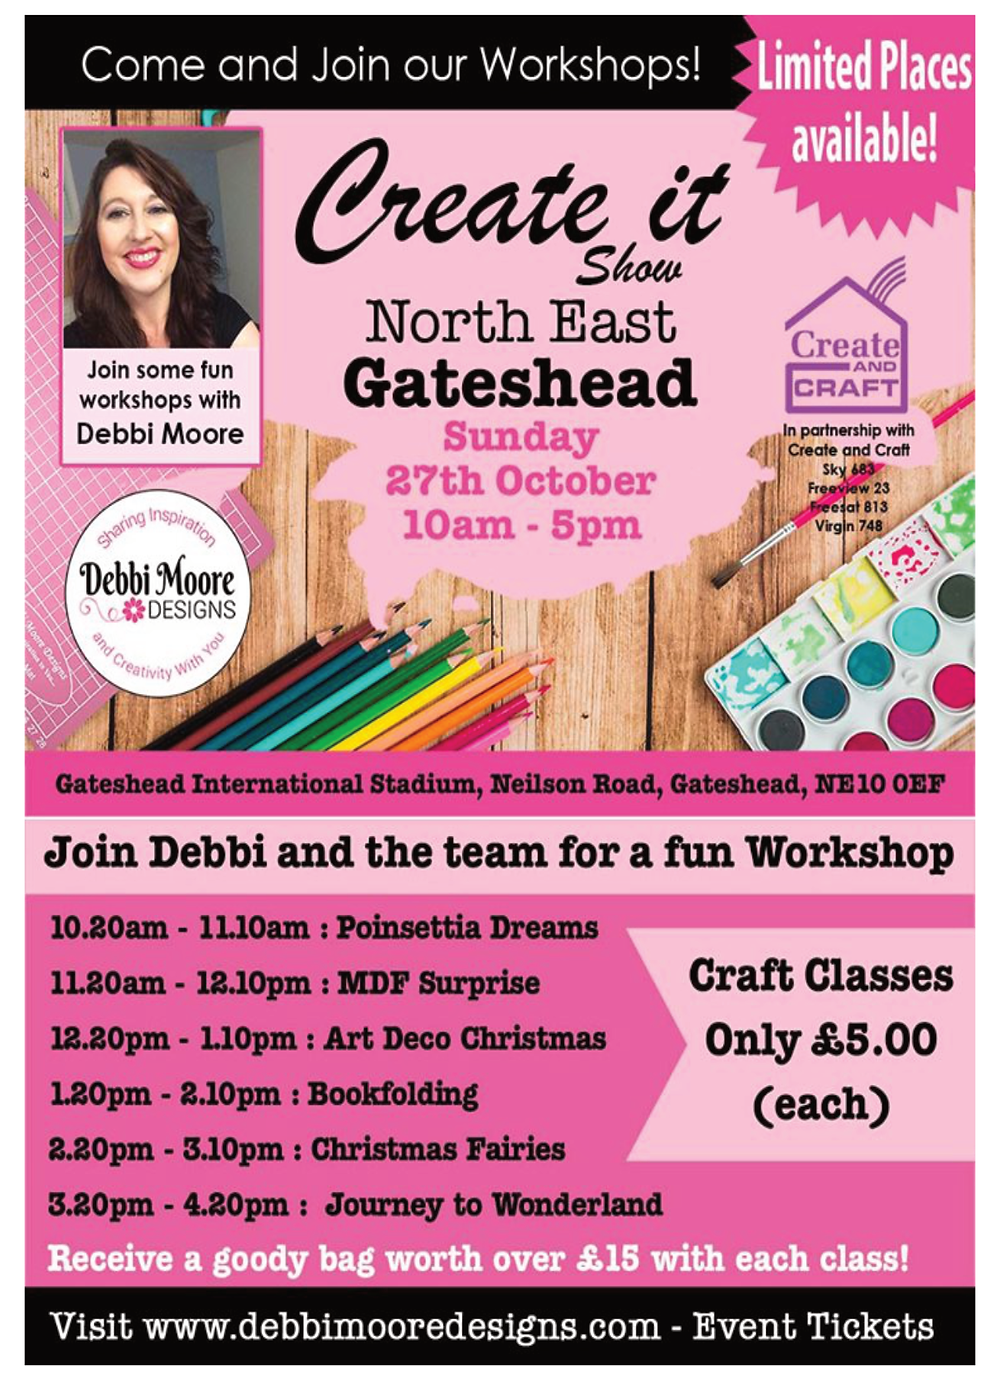 Debbi Moore Designs Workshop at Create it North East - Gateshead Craft Show